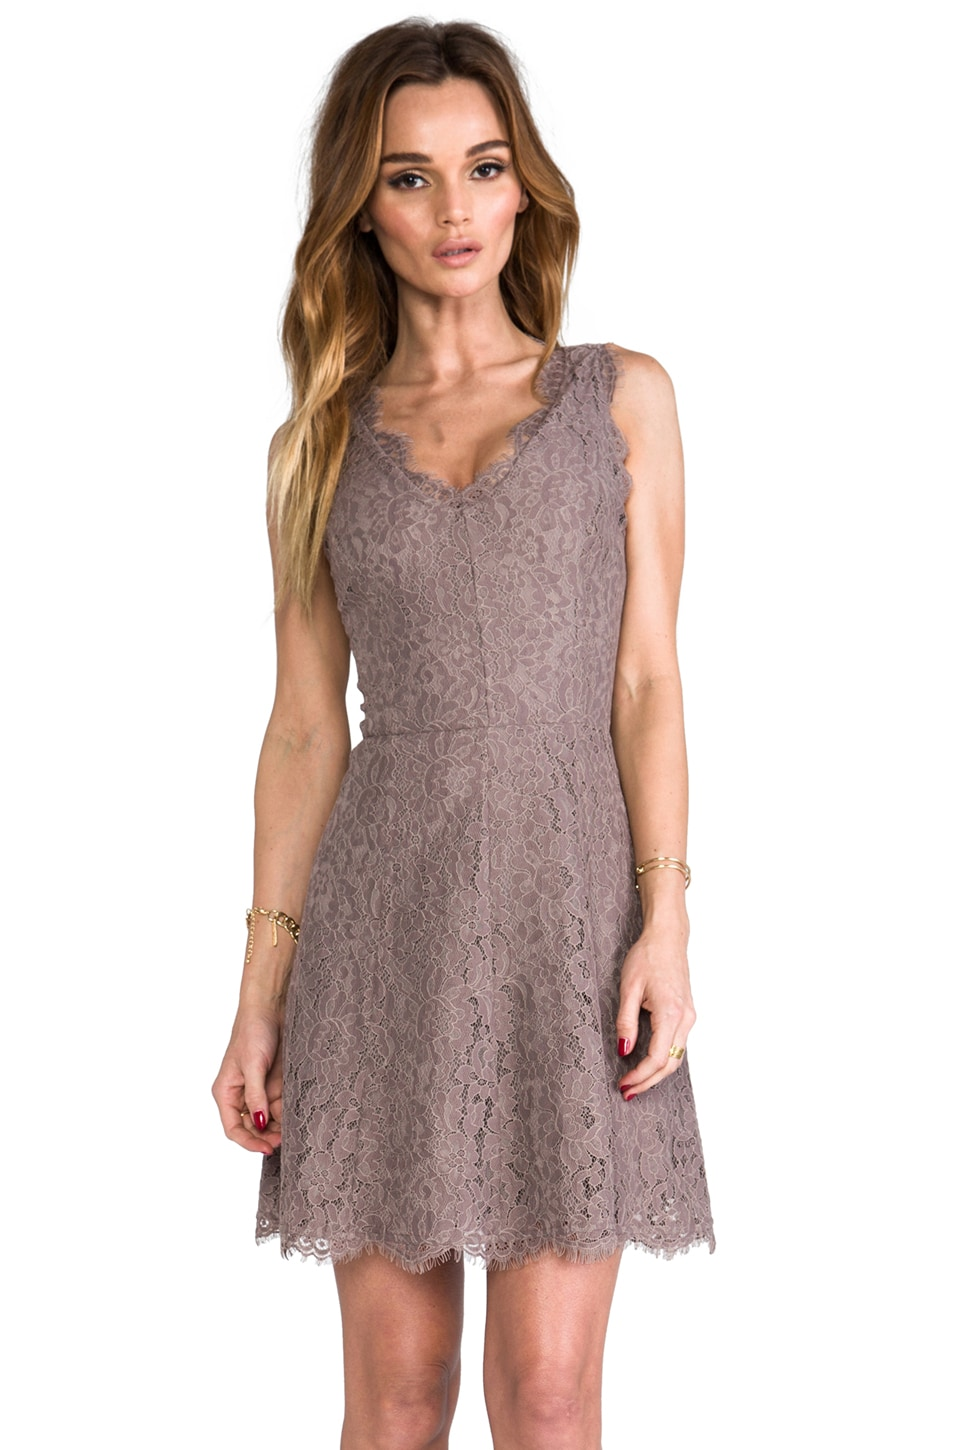 Joie Allover Lace Nikolina B Dress in Mink